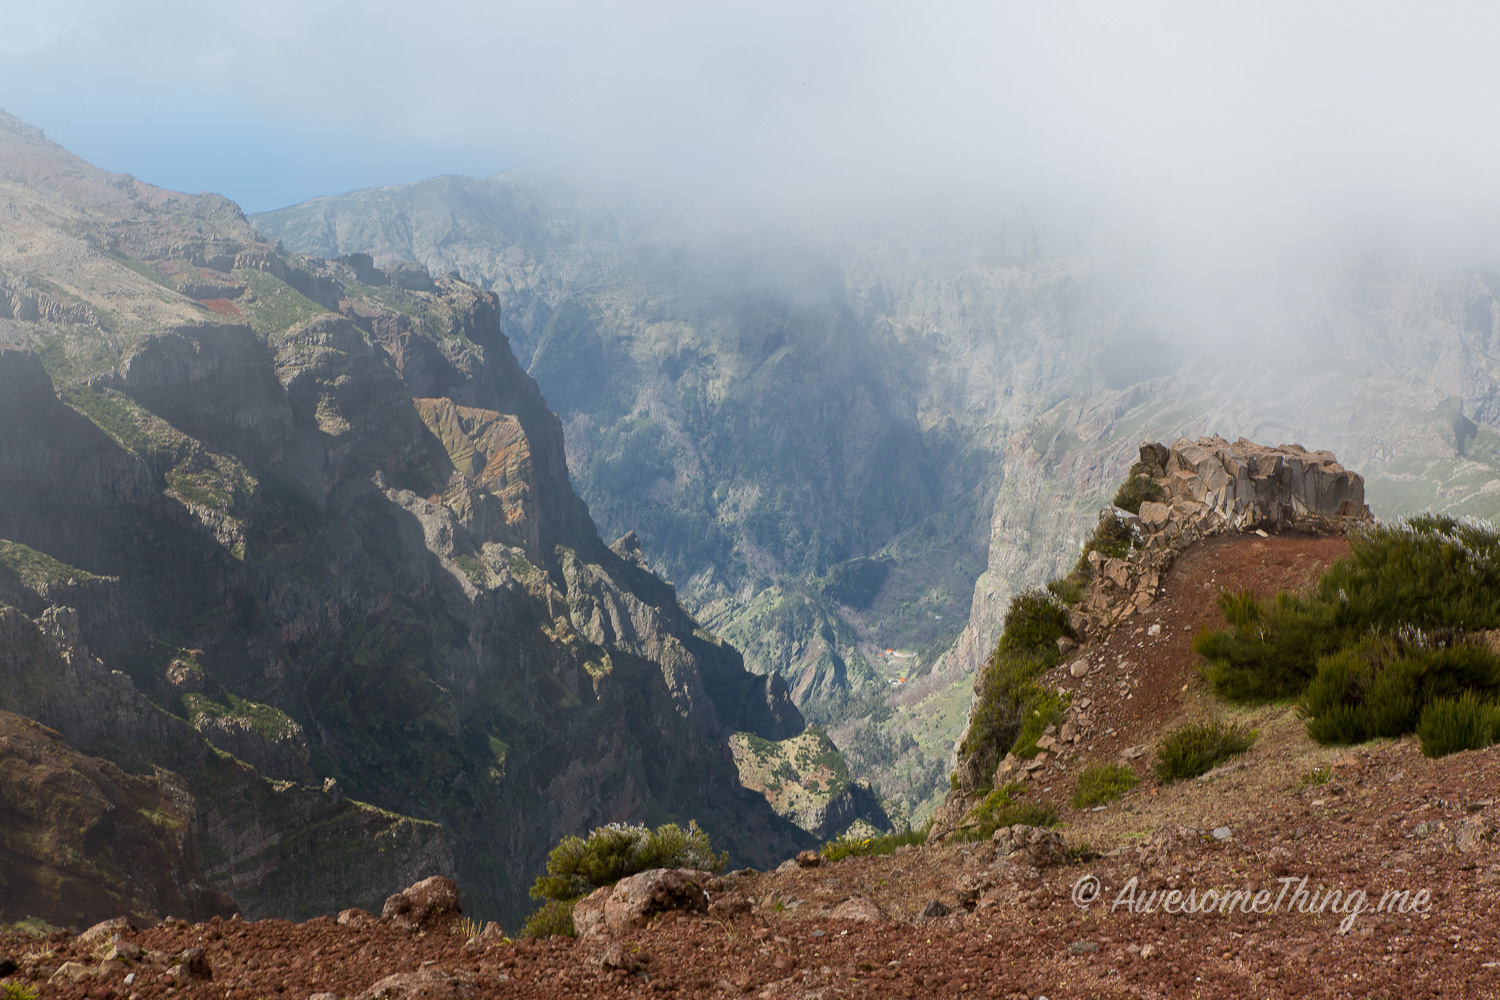 Pico do Areeiro